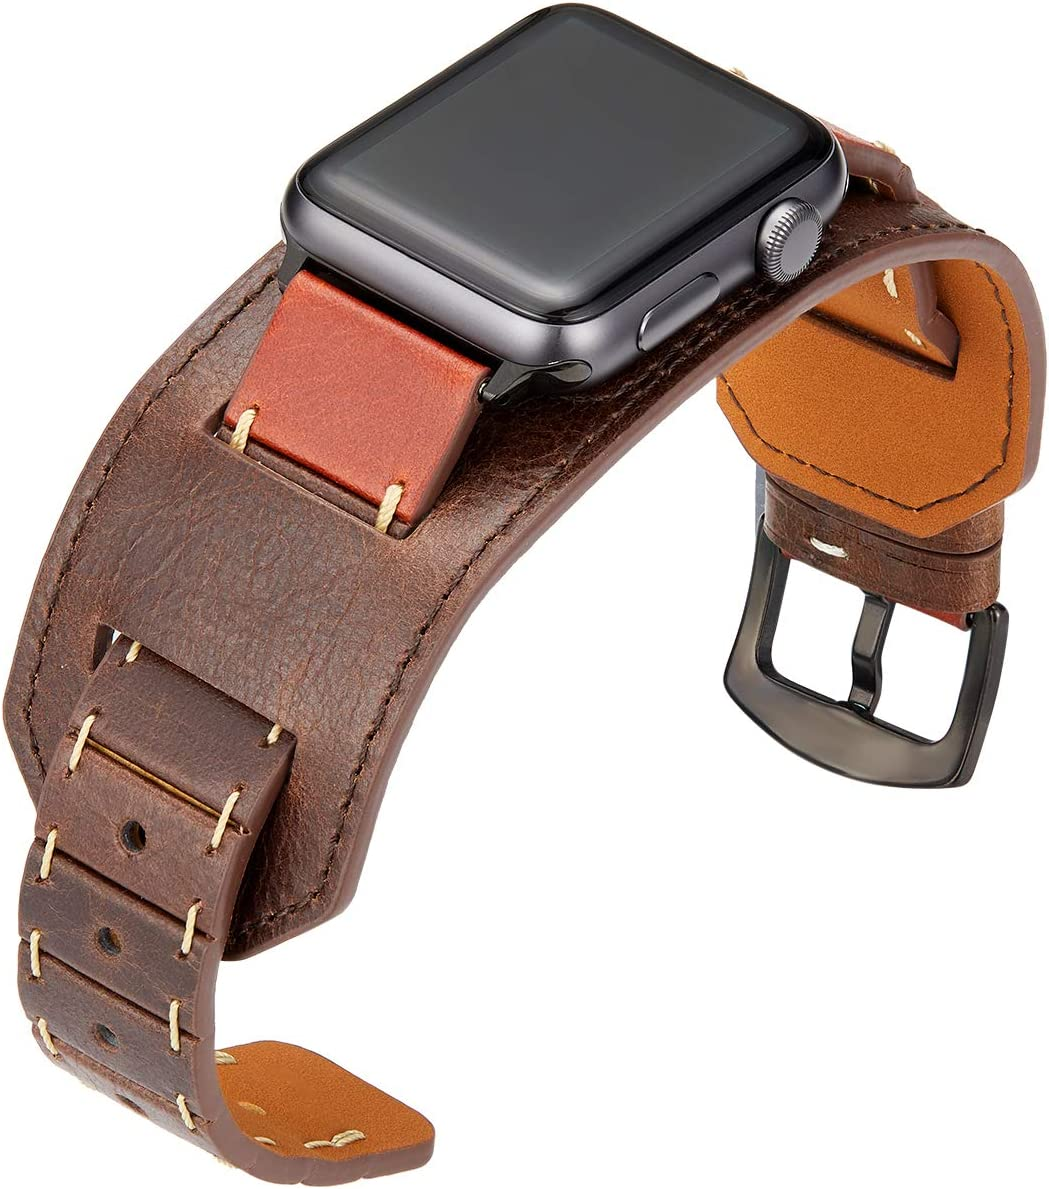 SEMILU Compatible with Apple Watch Band 38mm 40mm,Genuine Leather Replacement Strap Compatible with iwatch SE Series 6 5 4 3 2 1-38/40mm Brown